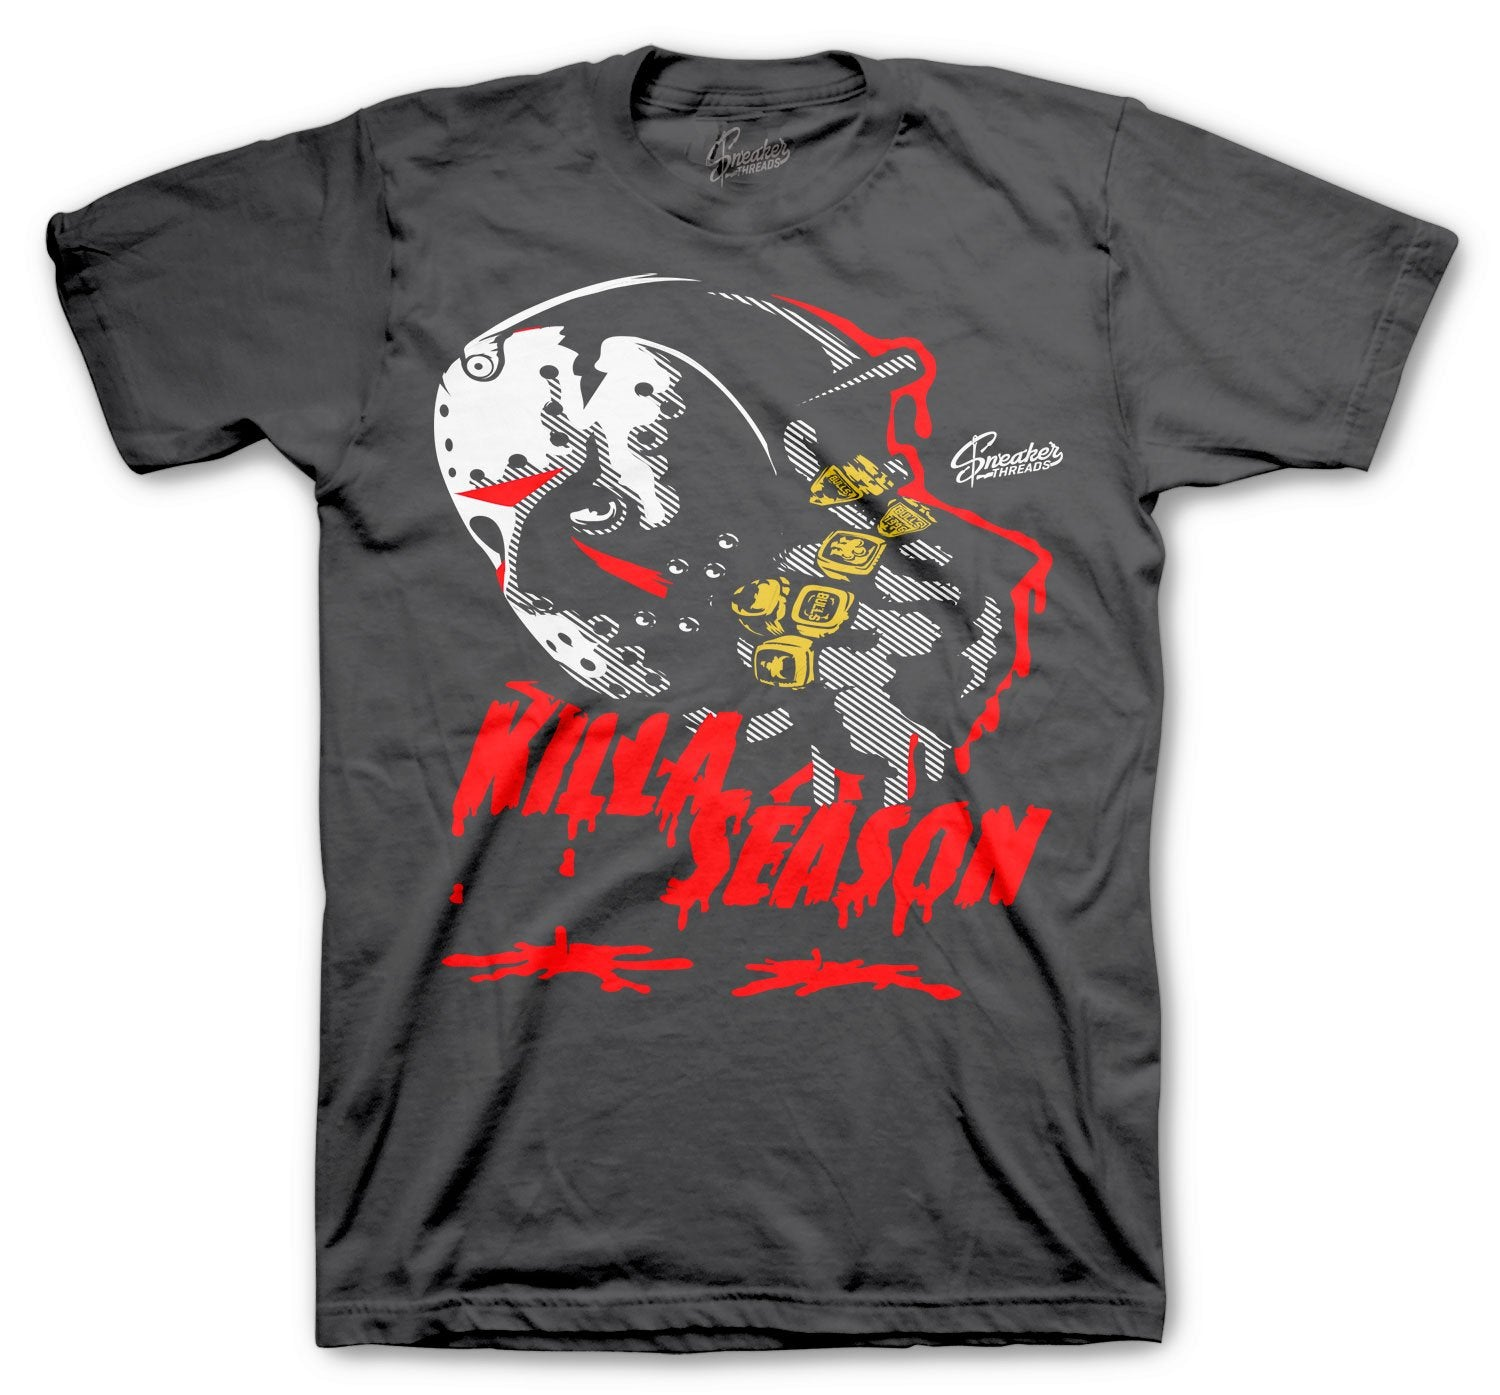 Killer Graphic tees to match Jordan 12 Dark Grey